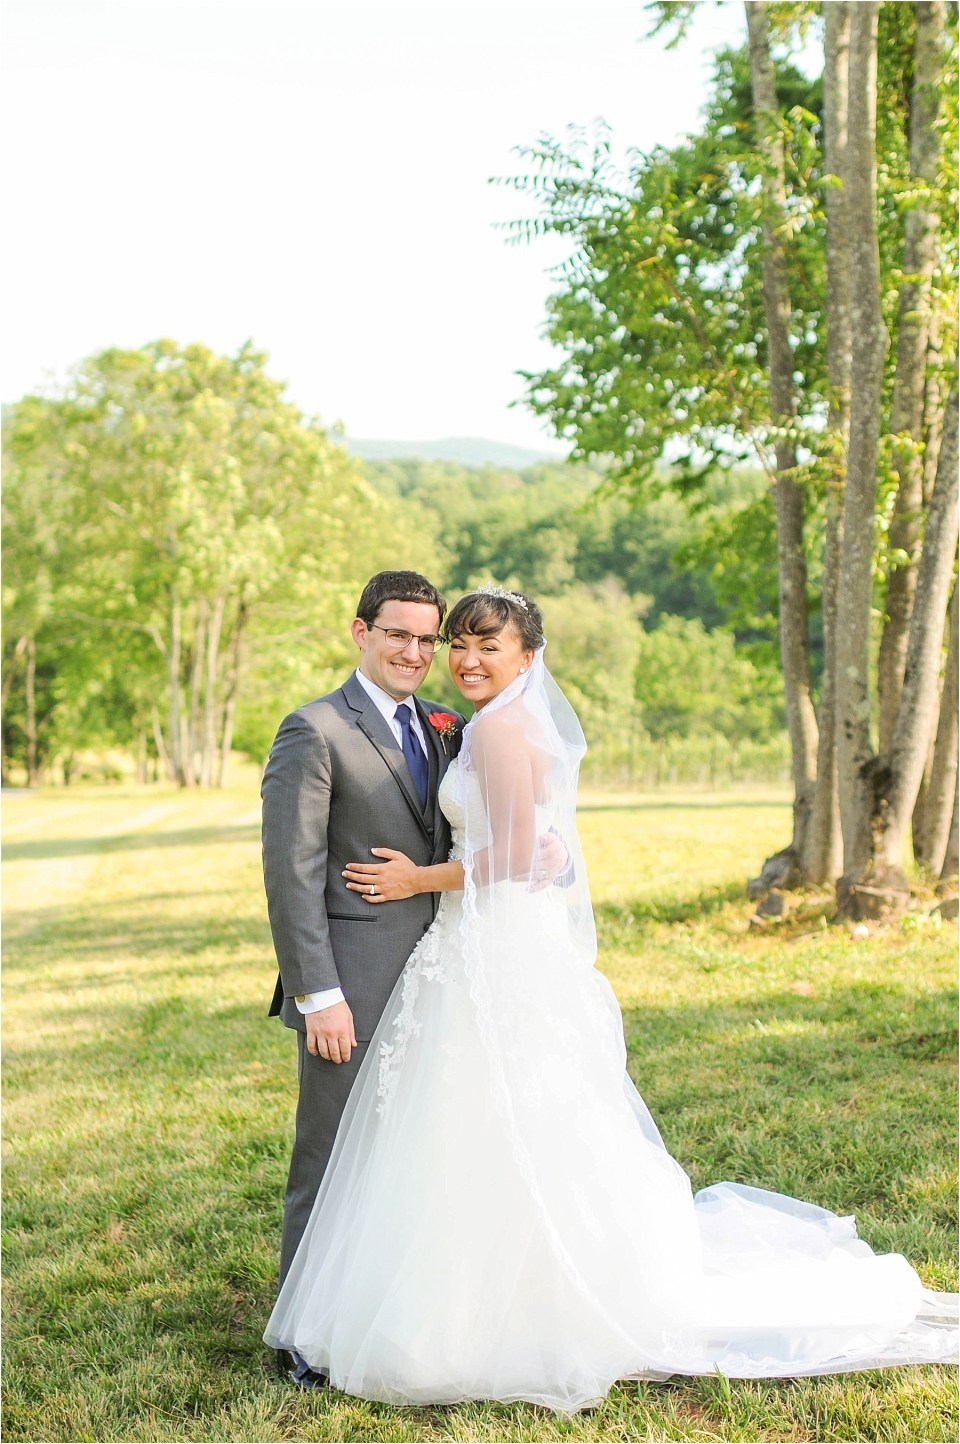 Cana Winery wedding in Virginia | Ana Isabel Photography 163